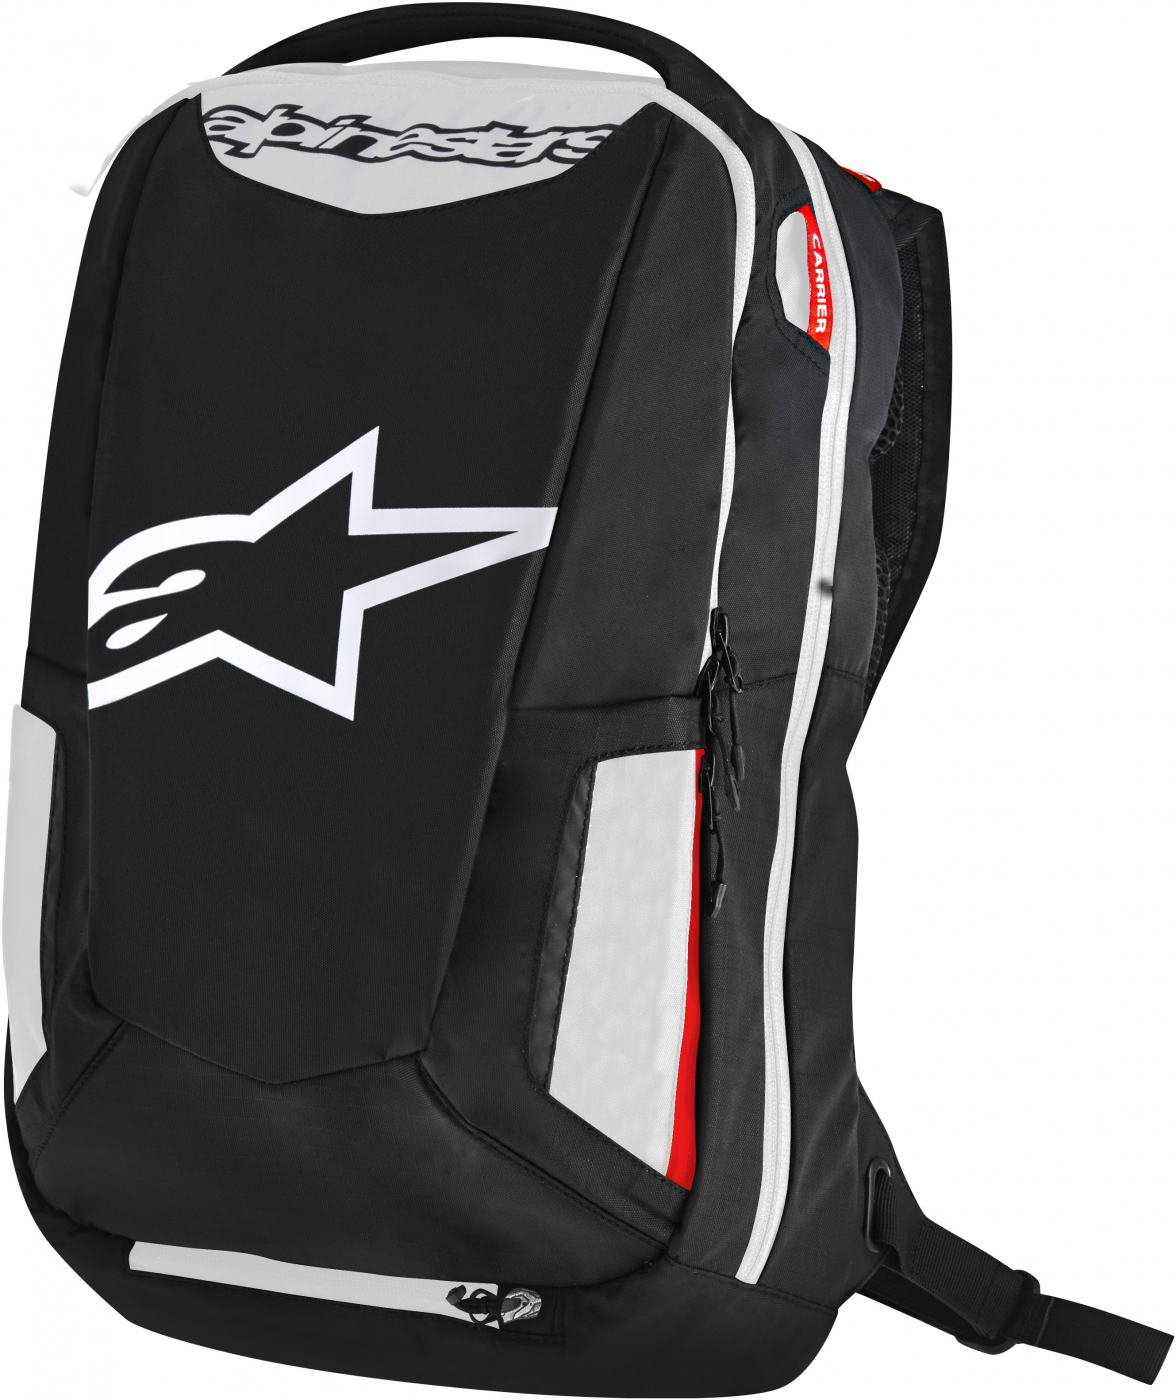 0dd68f41a04 ALPINESTARS batoh CITY HUNTER black white red